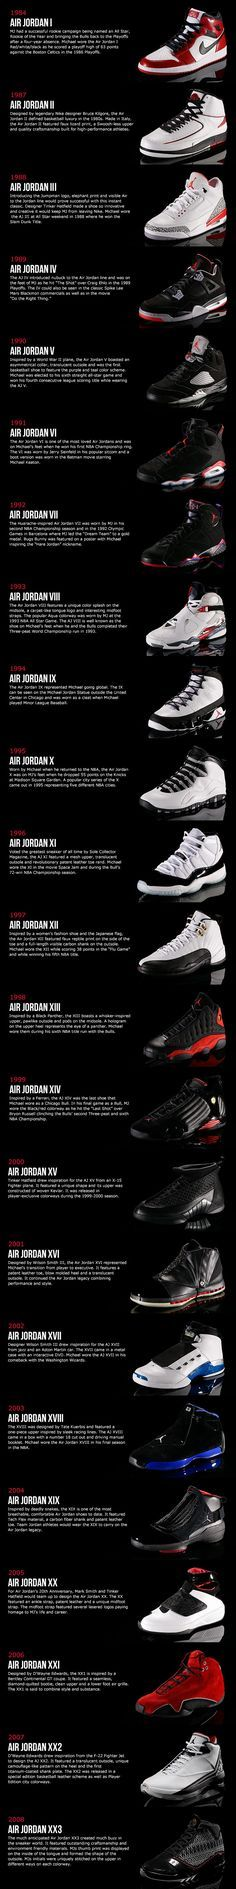 History of Air Jordan Shoes